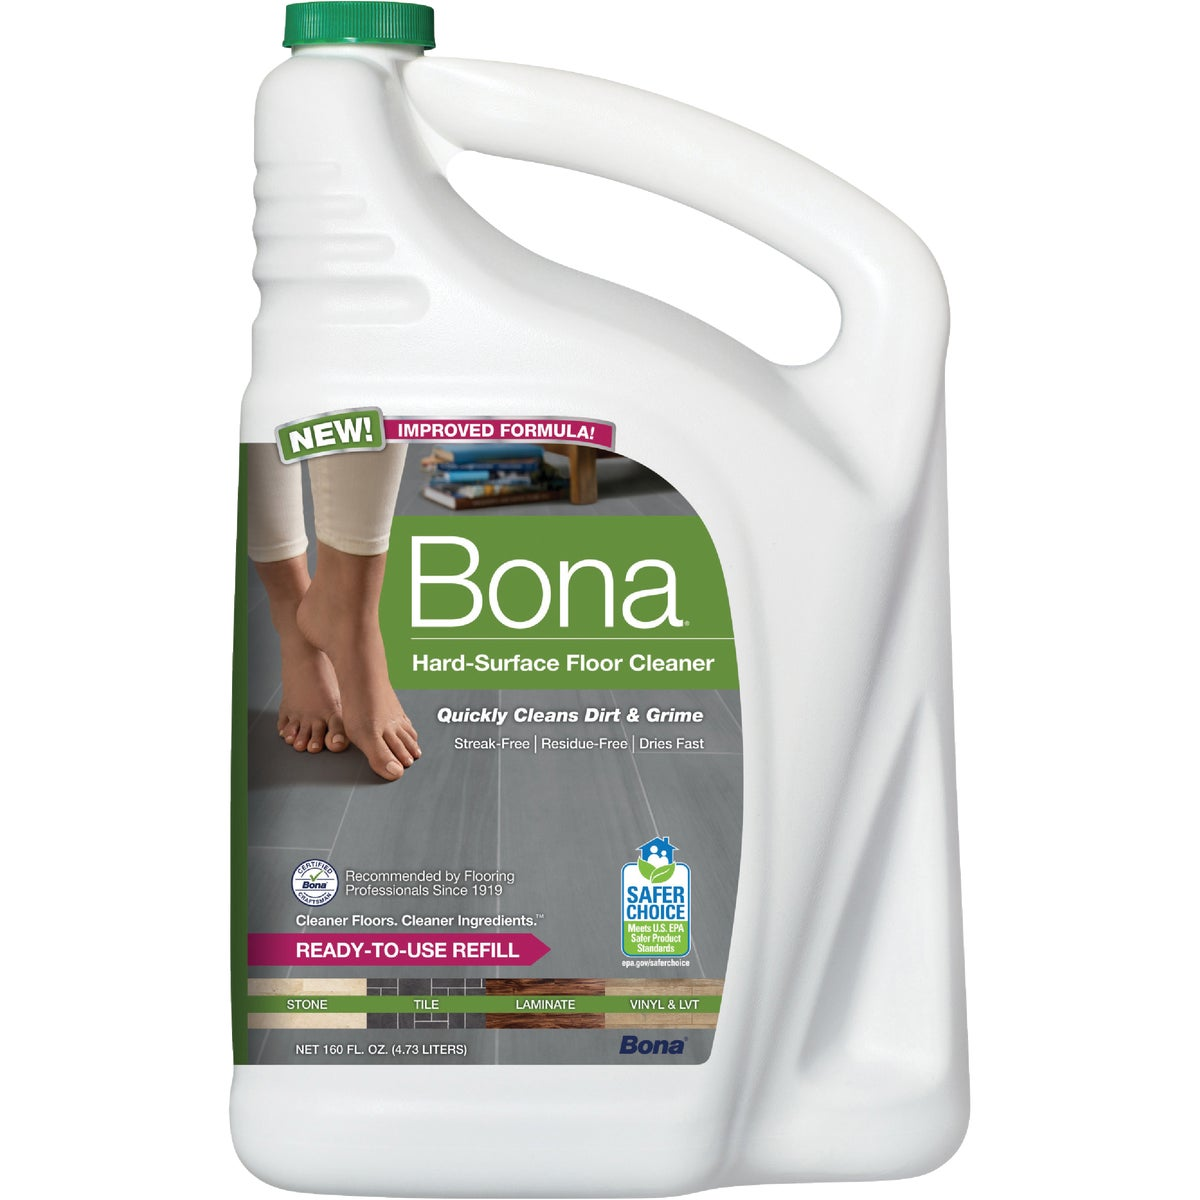 Bona Stone, Tile, & Laminate Floor Cleaner, WM700056002